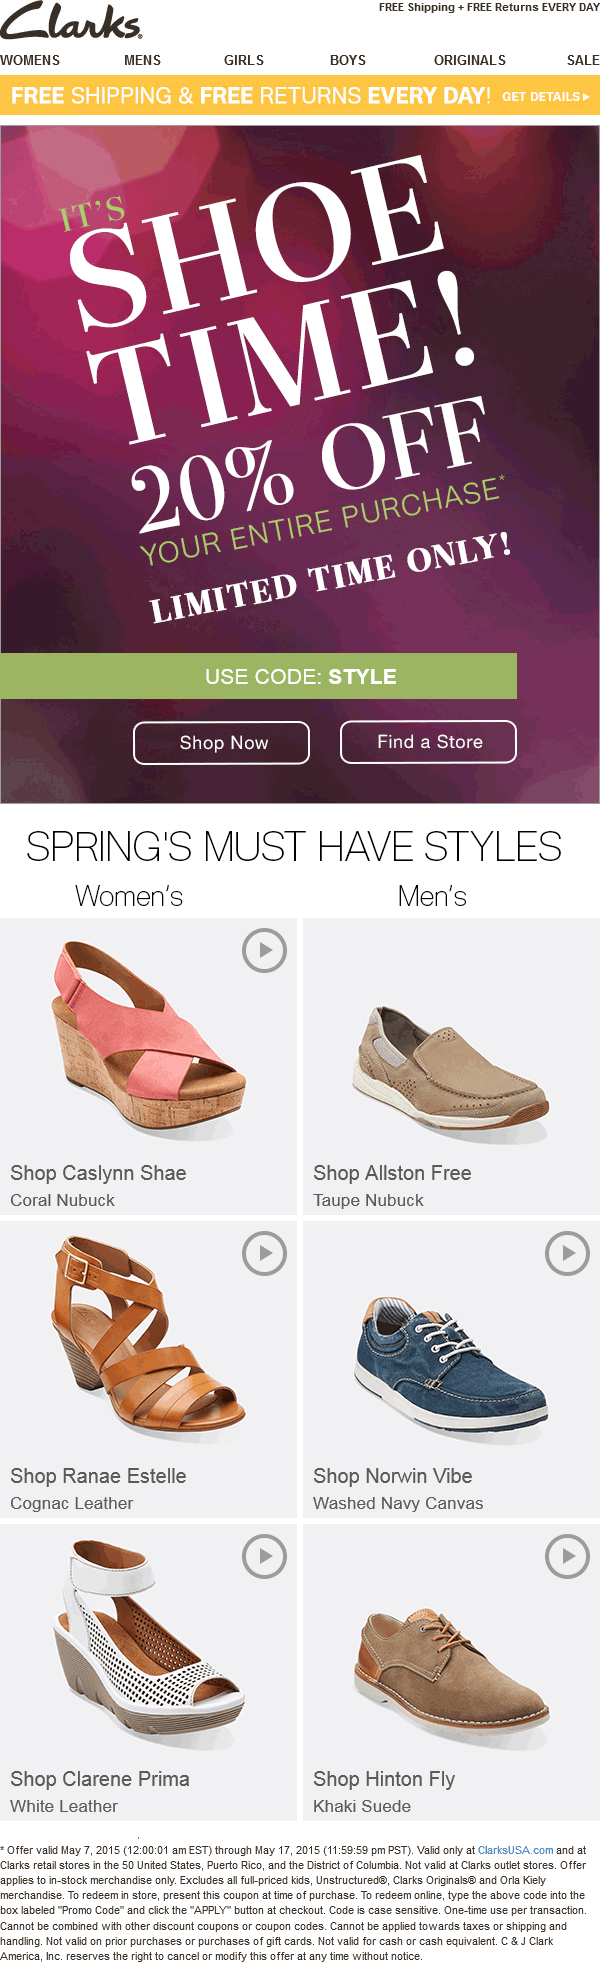 Clarks Coupon March 2017 20% off the shoes at Clarks, or online via promo code STYLE